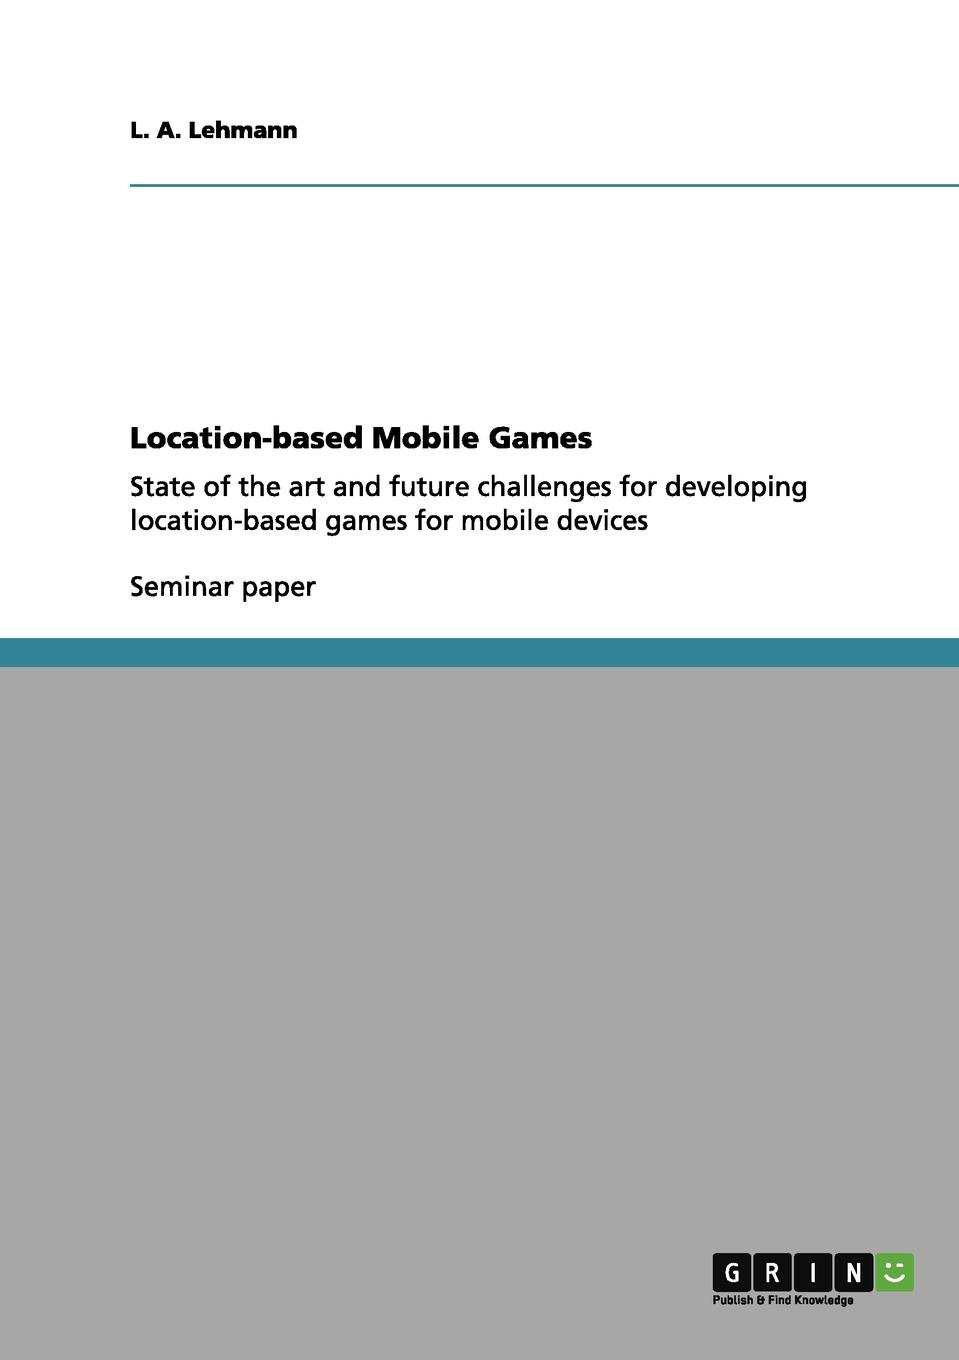 L. A. Lehmann Location-based Mobile Games games of state